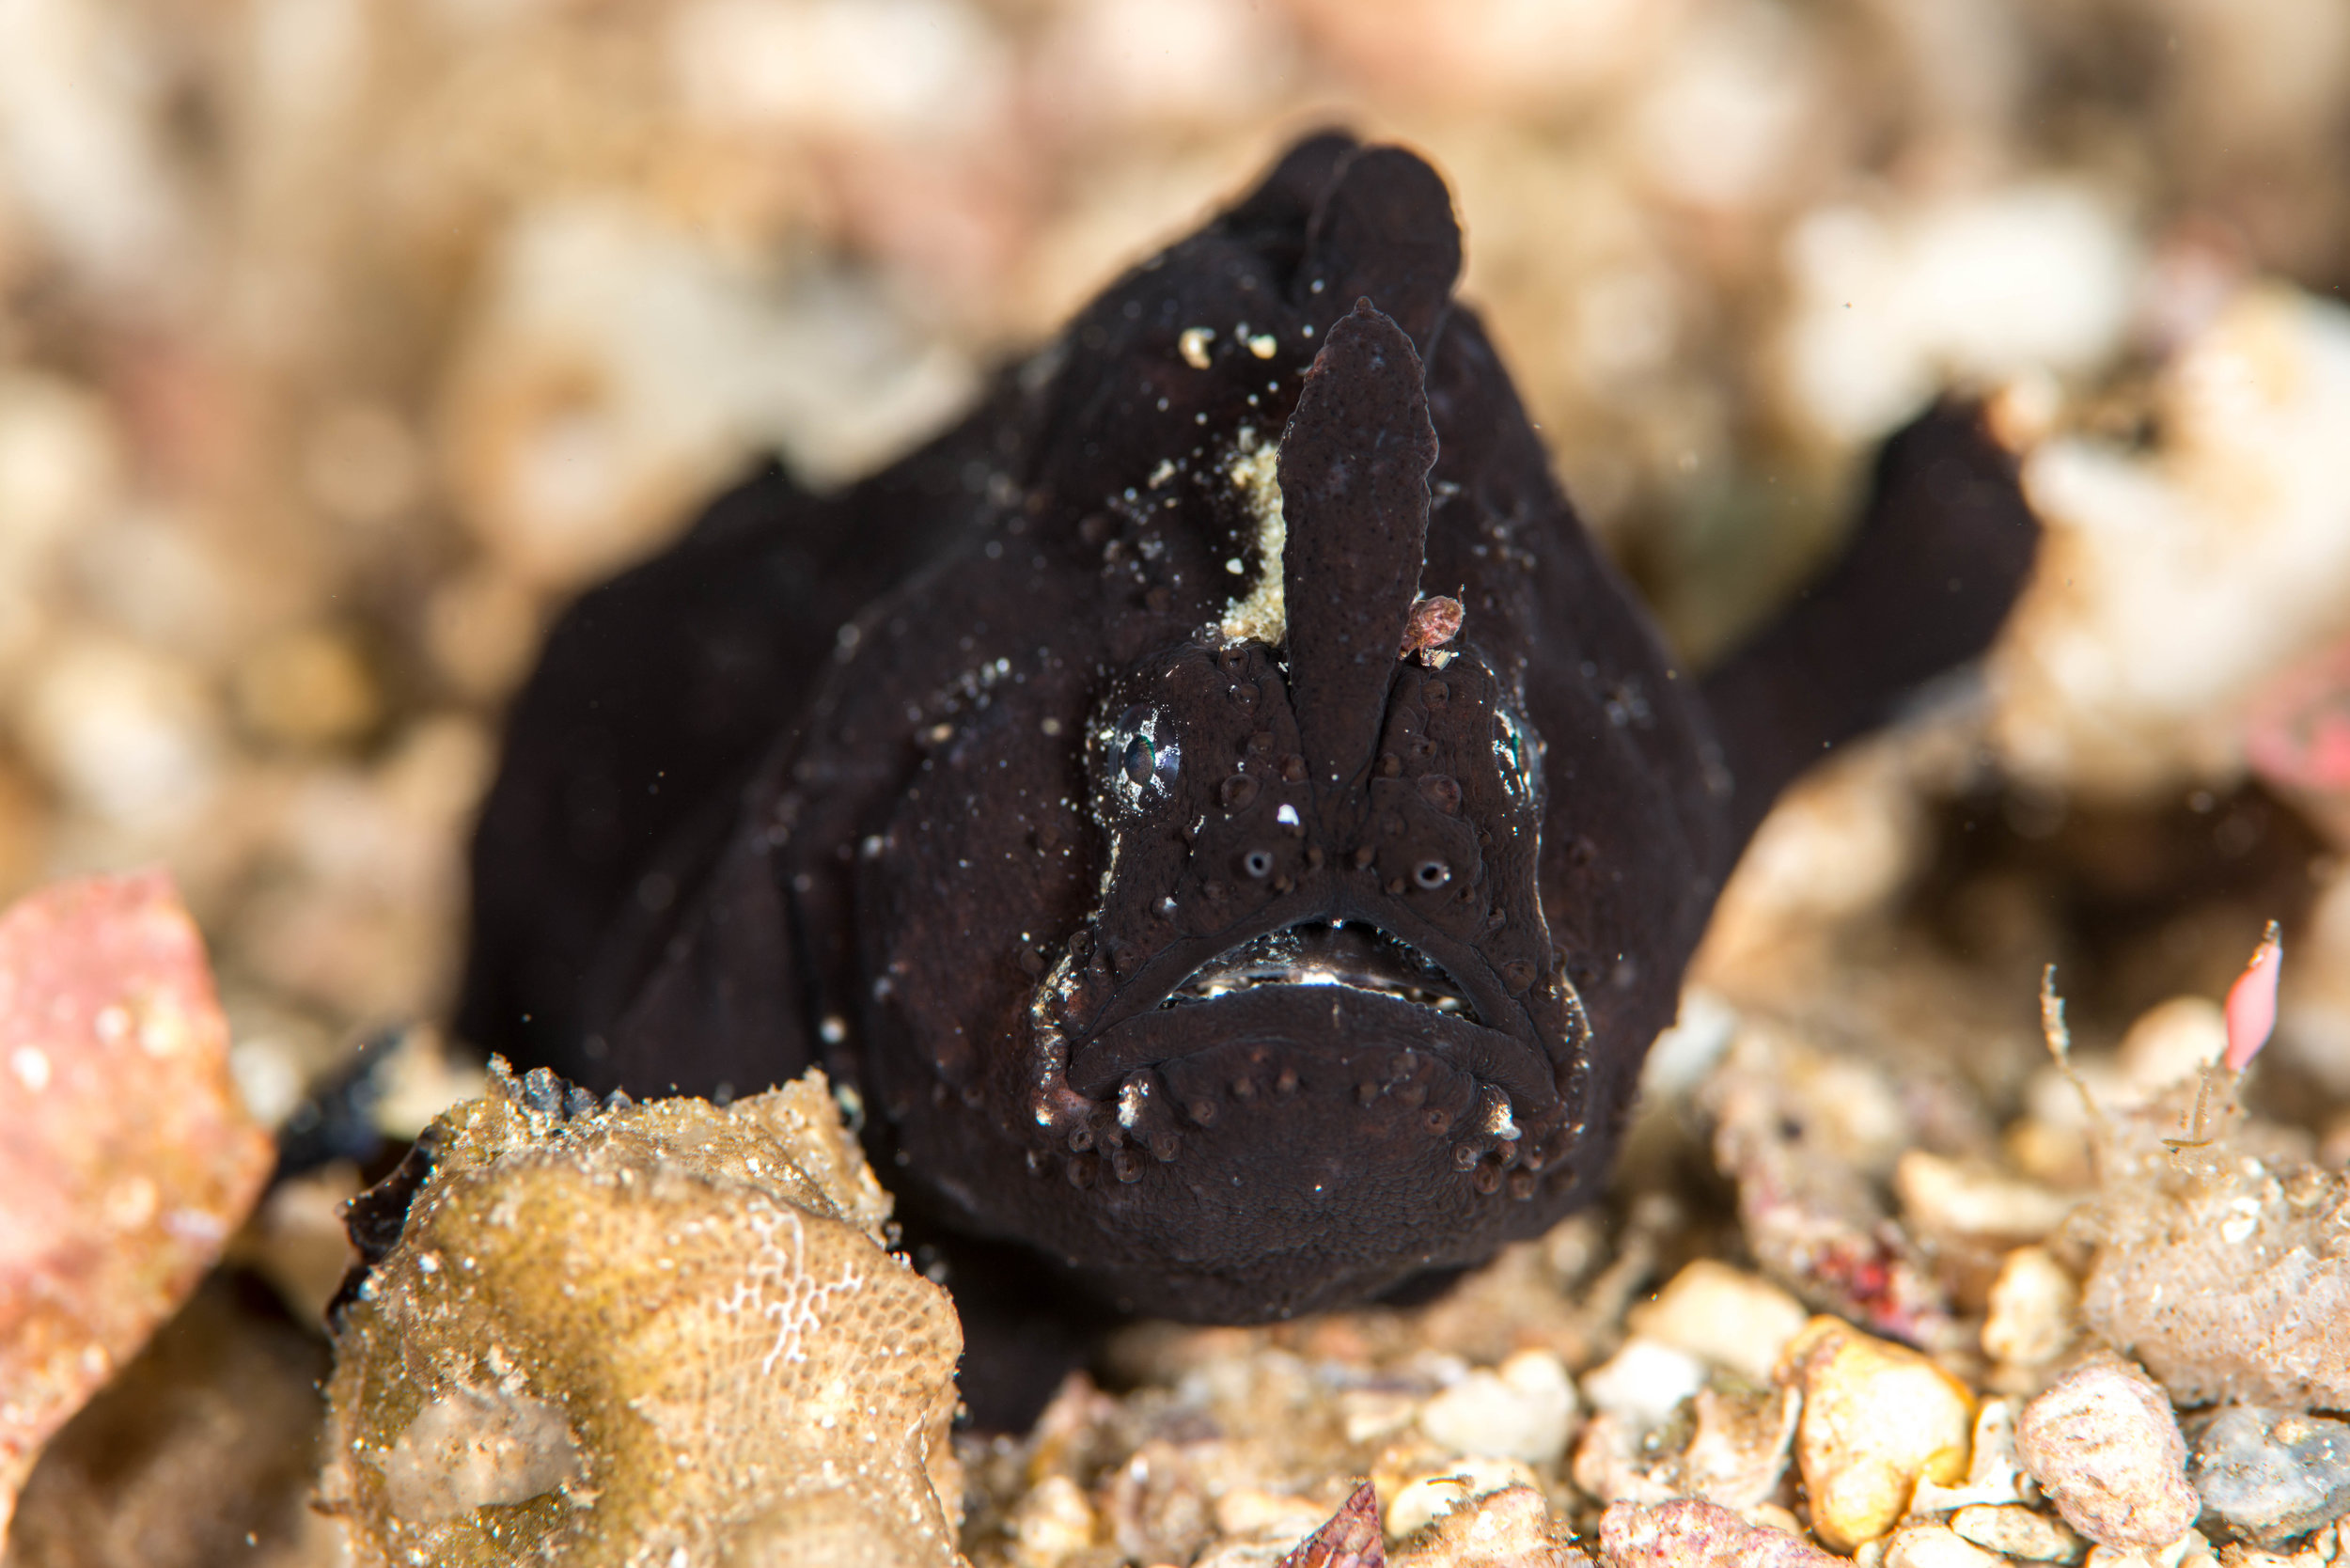 Smooth/White-spotted anglerfish (Phyllophryne scortea)